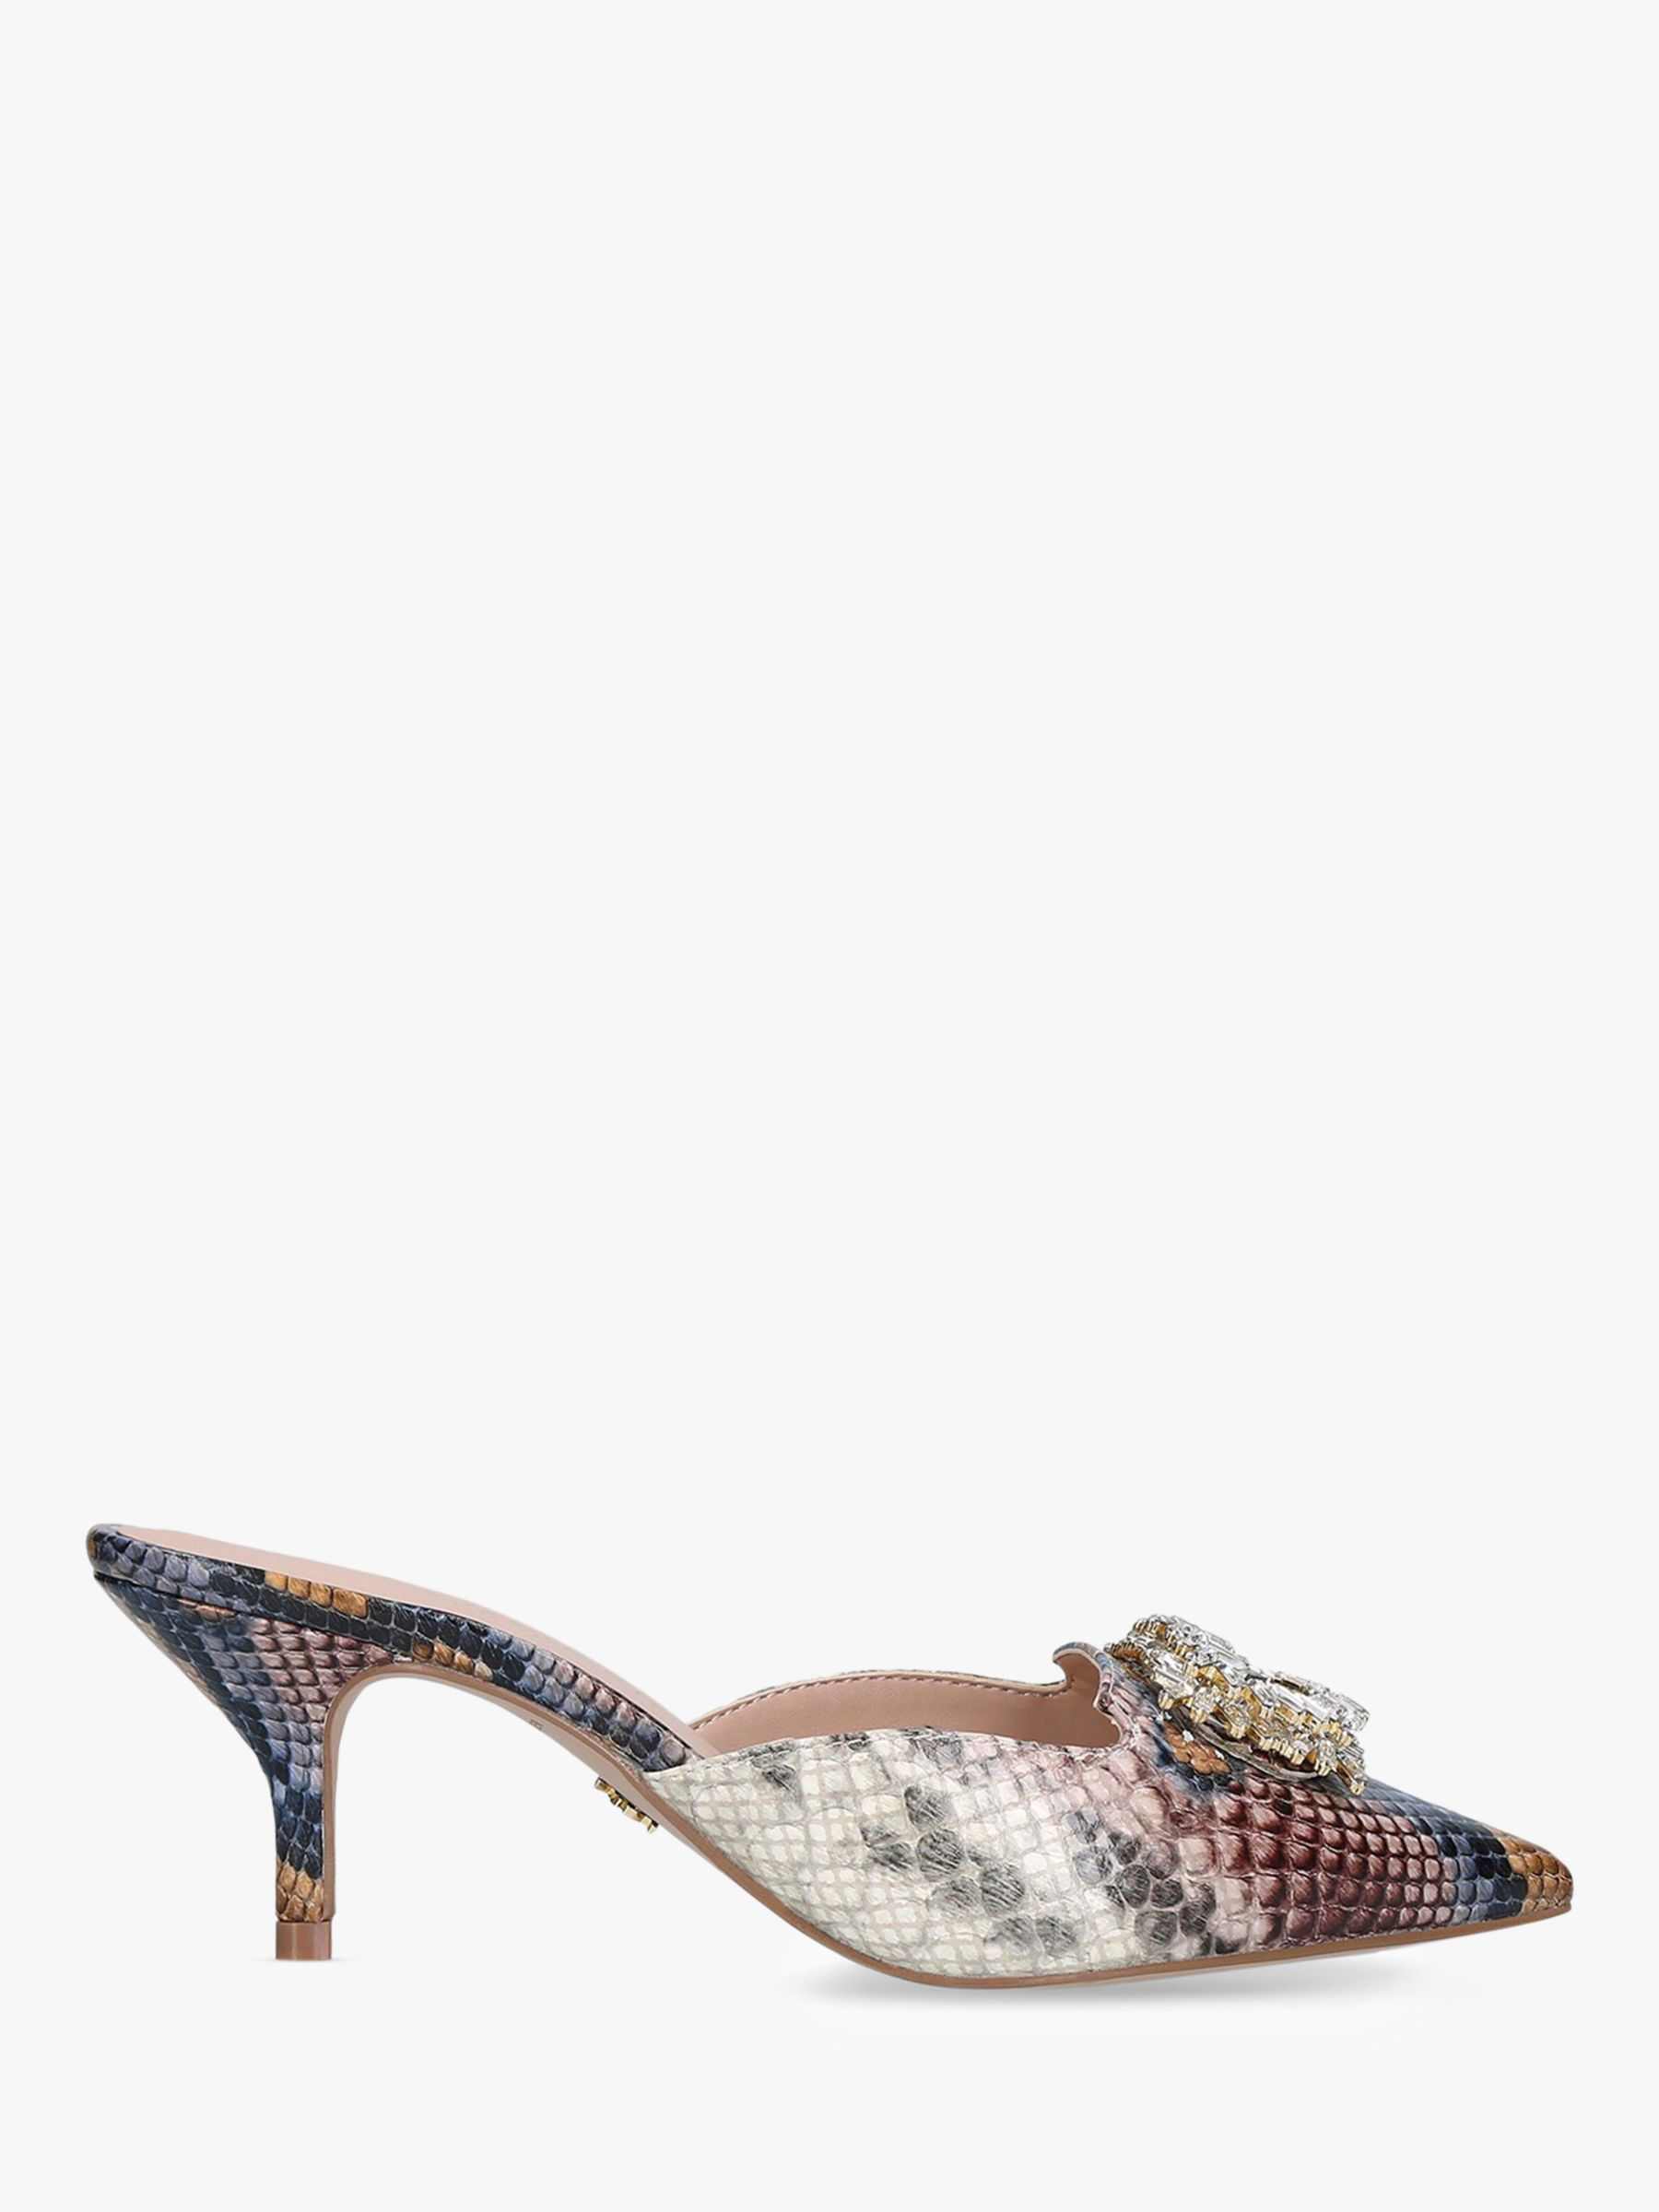 Kurt Geiger Kurt Geiger London Pia Jewel Mule Court Shoes, Multi